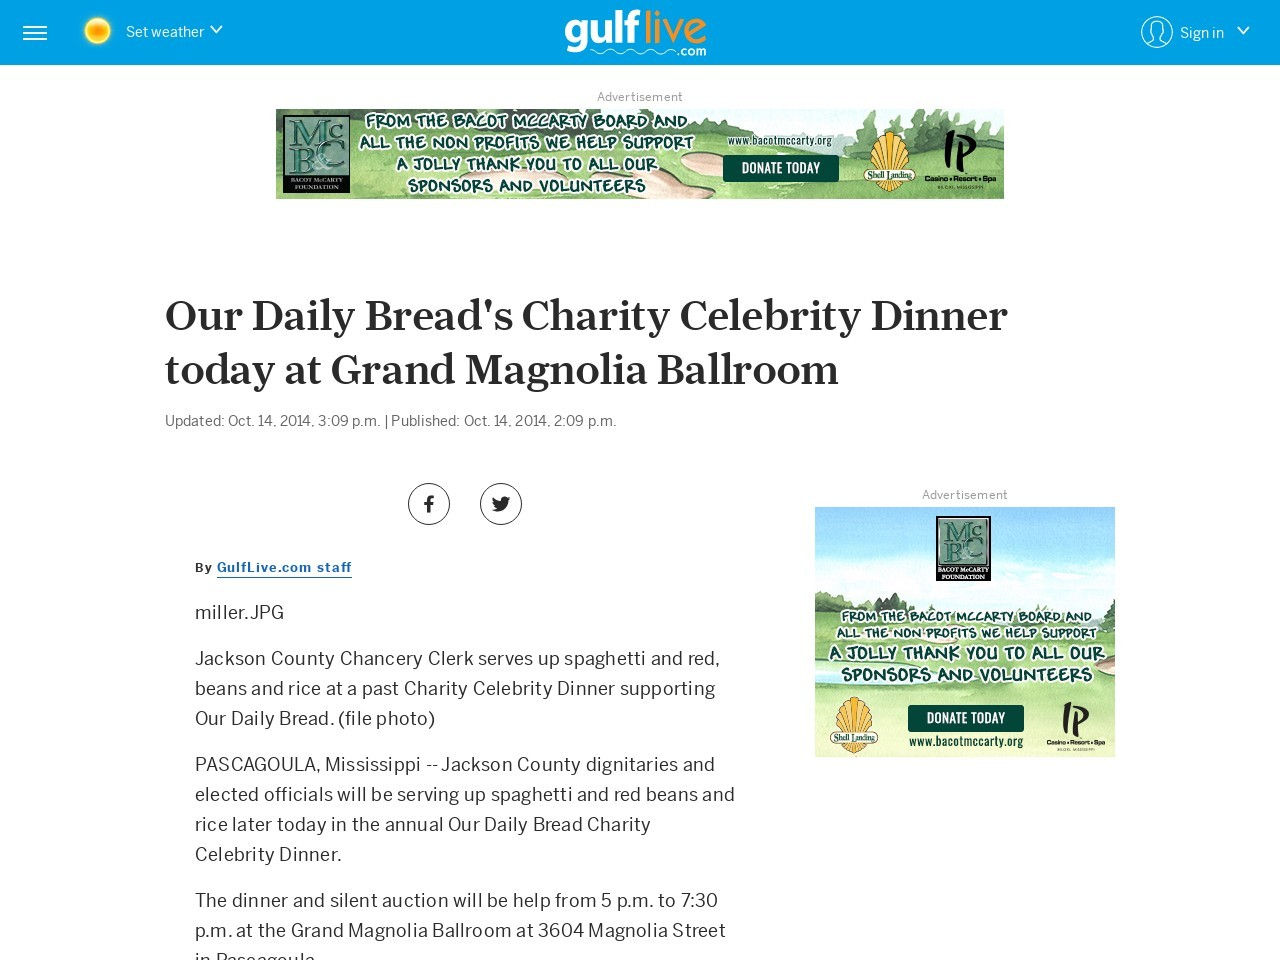 Our Daily Bread's Charity Celebrity Dinner today at Grand Magnolia Ballroom